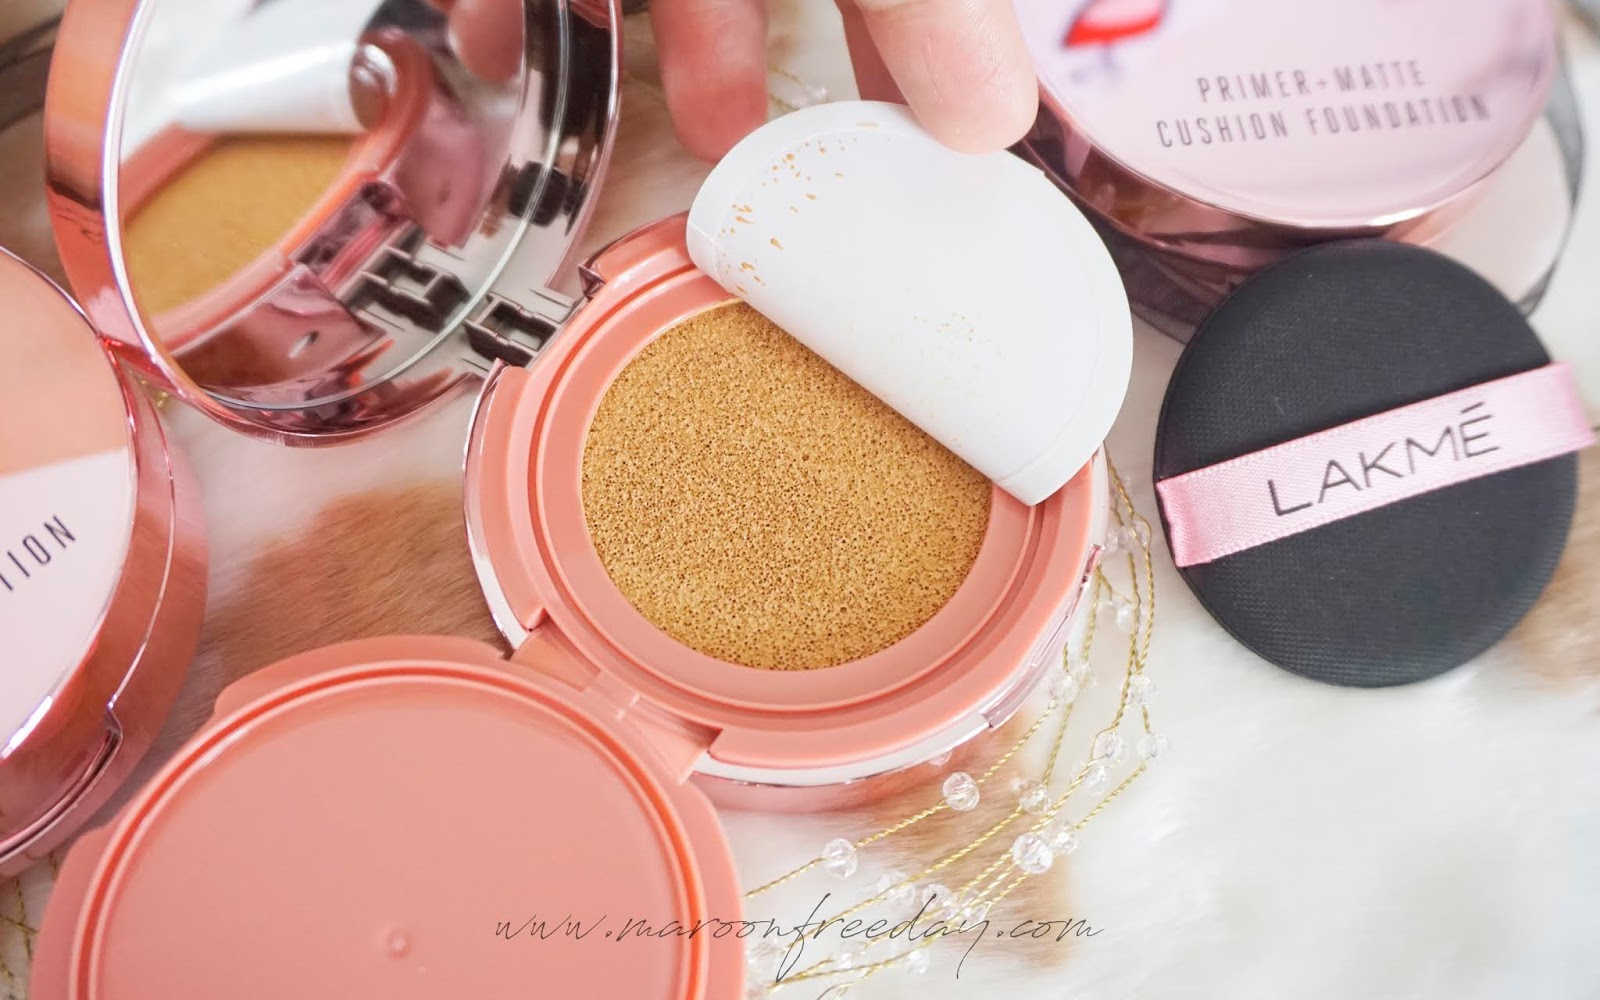 Shade Lakme Primer Matte Cushion Foundation